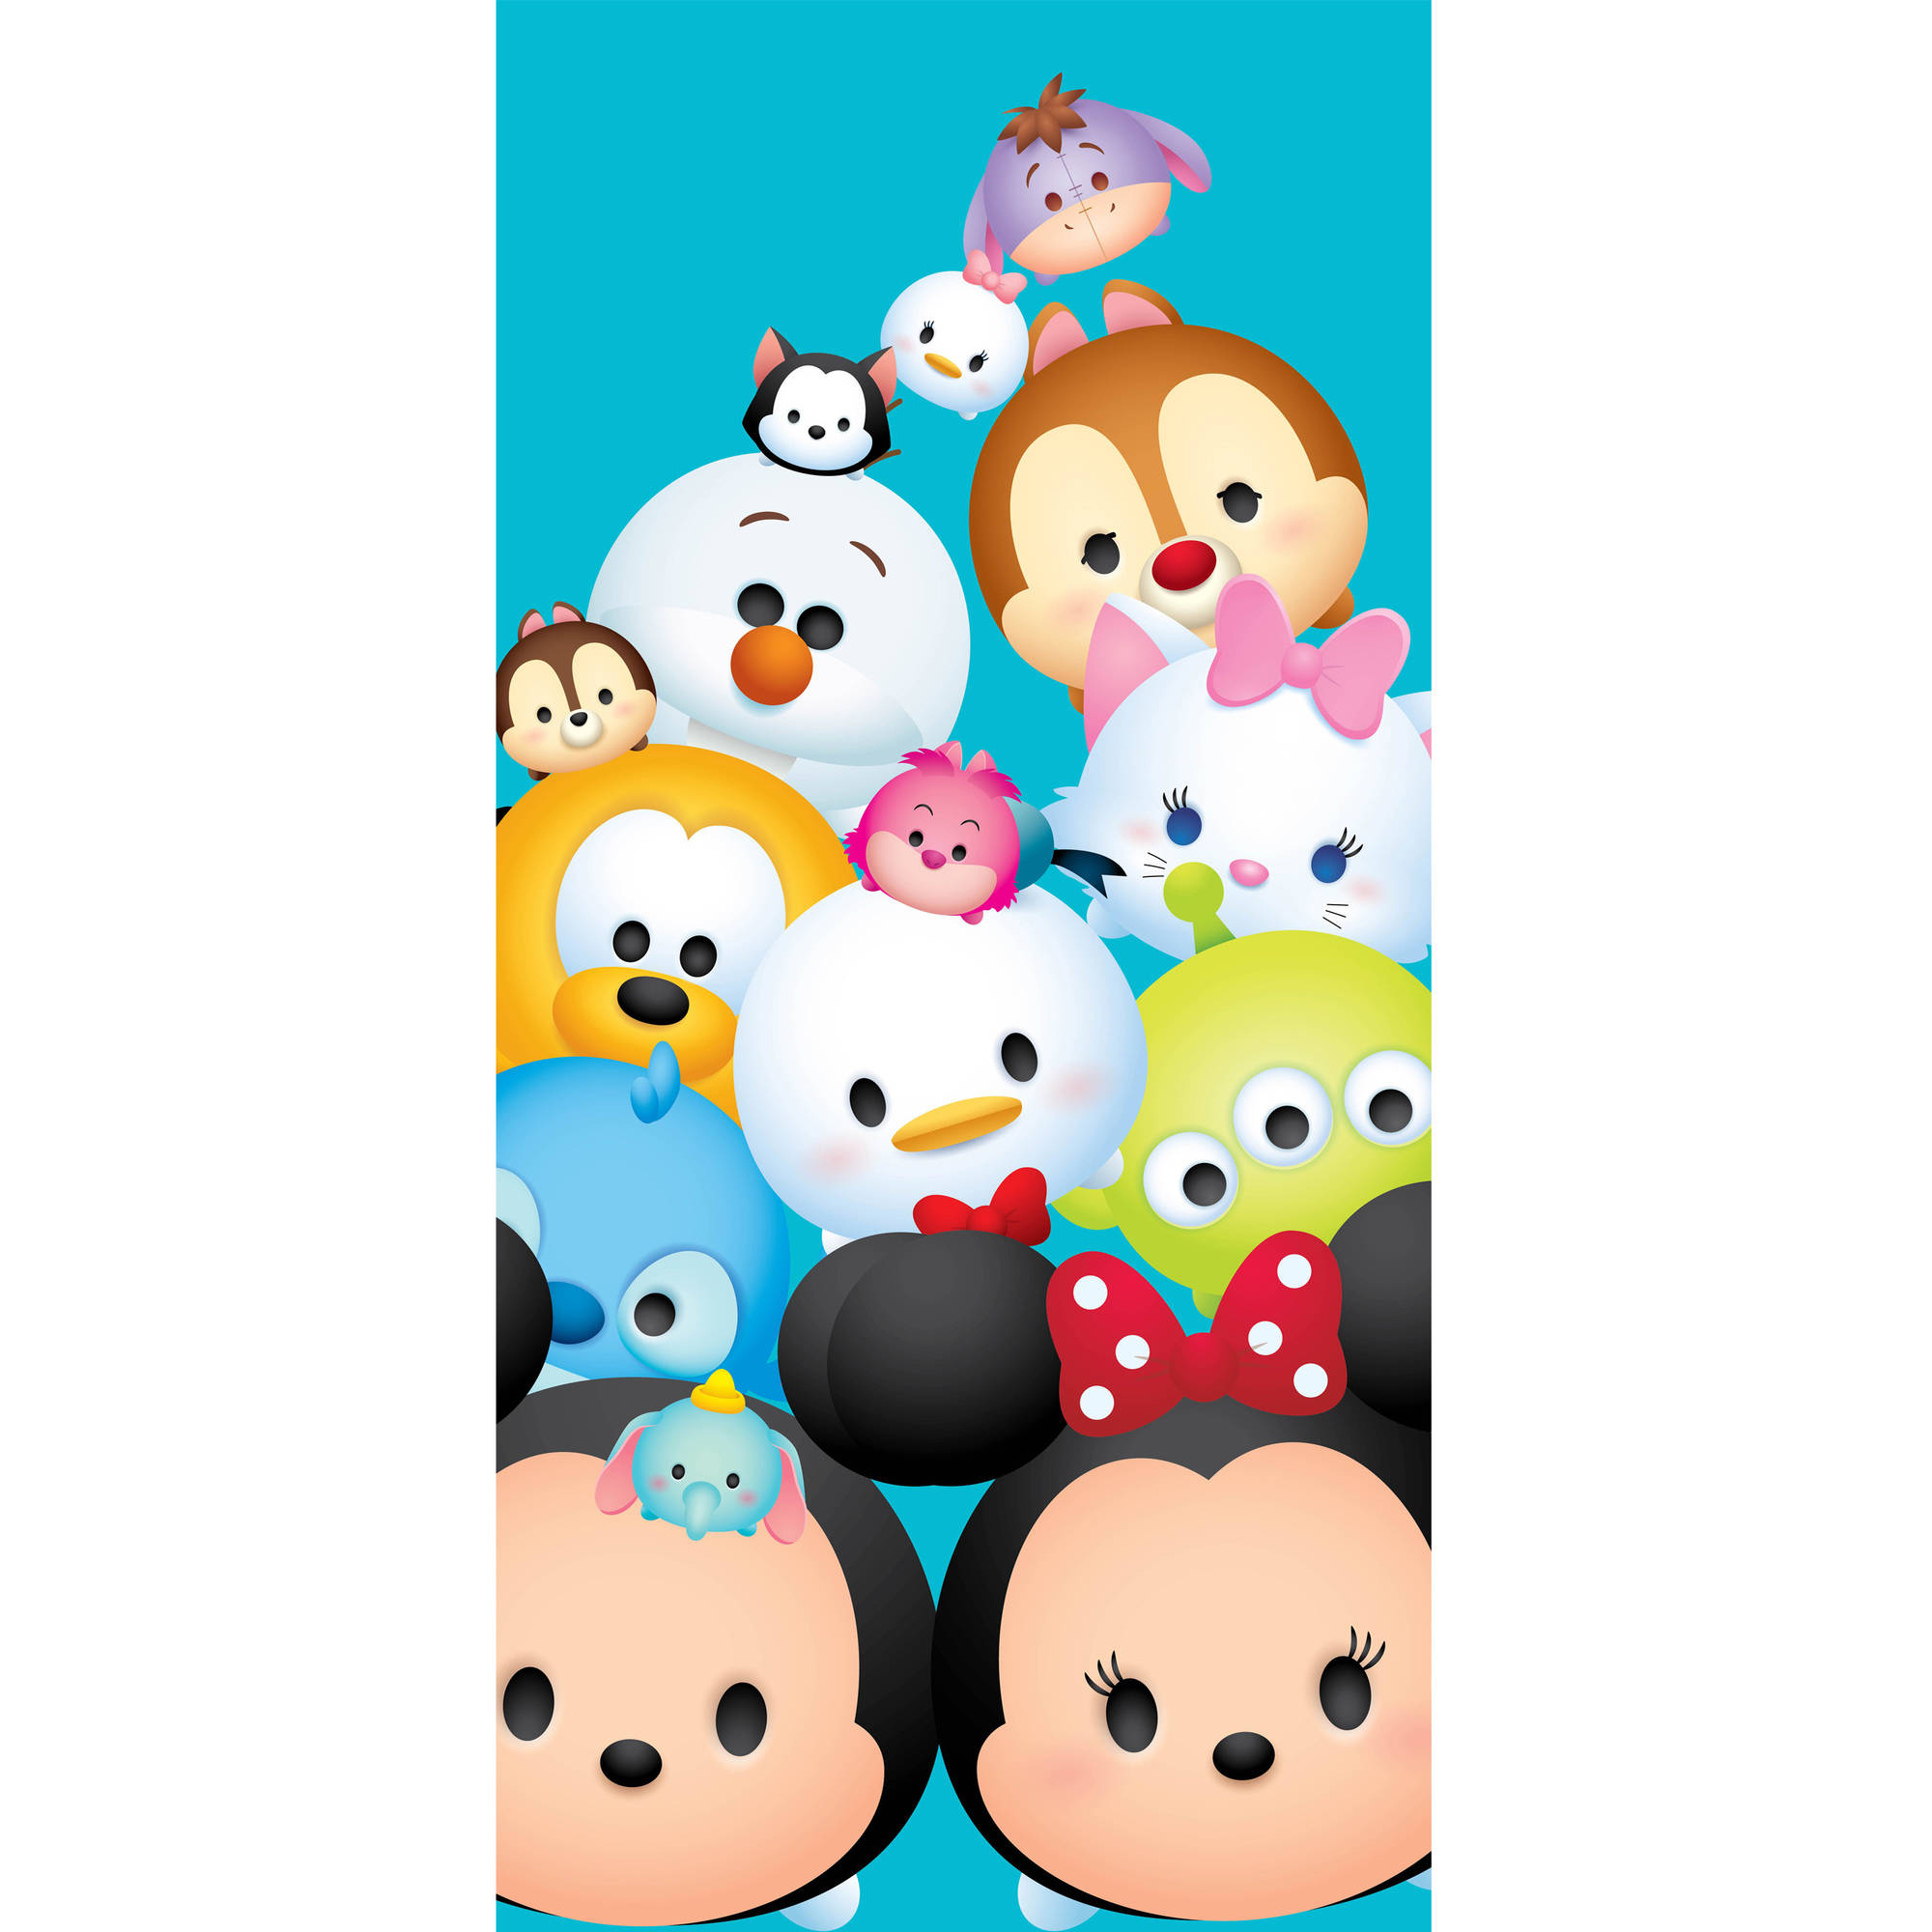 Disney Tsum Tsum Stacks on Stacks Beach Towel